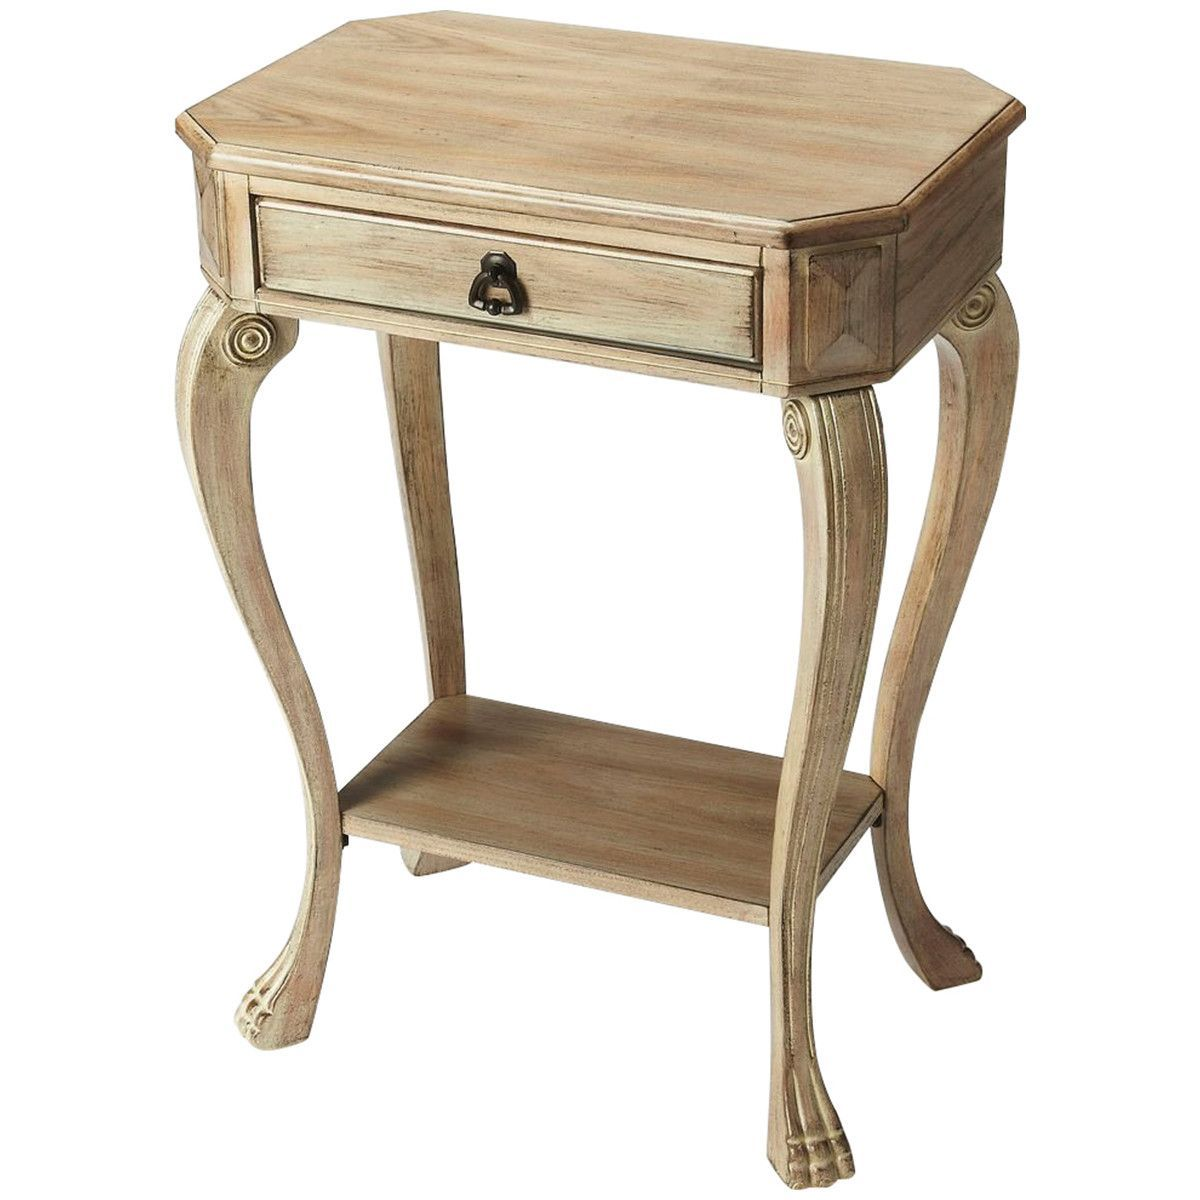 Butler masterpiece channing driftwood console table driftwood butler masterpiece channing driftwood console table geotapseo Images